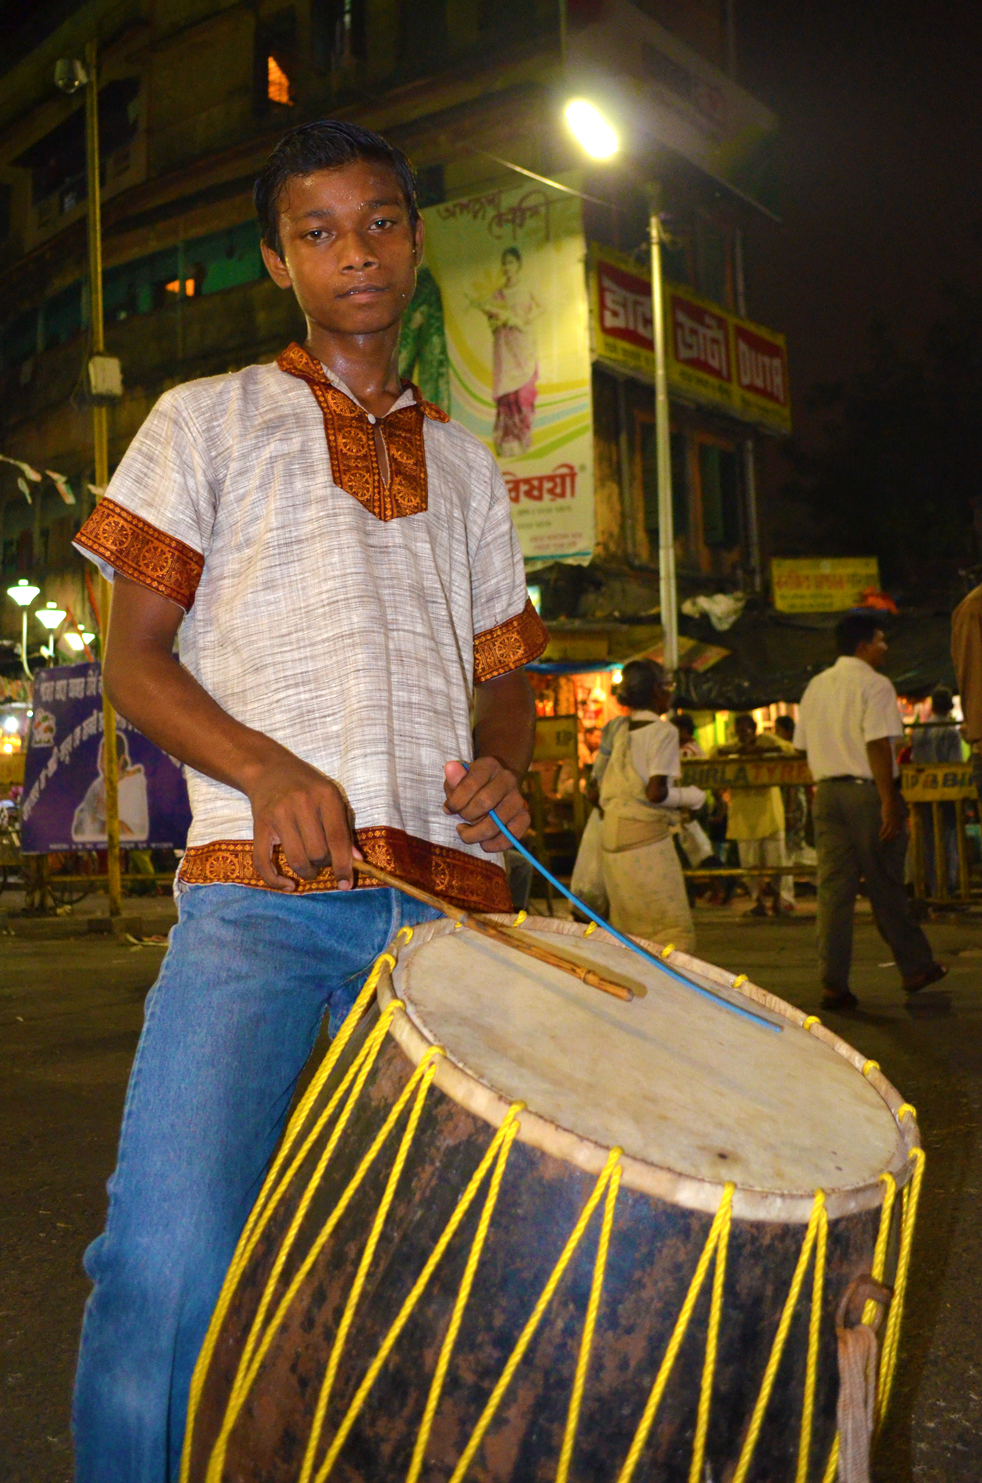 Lala and his giant drum, called dhak